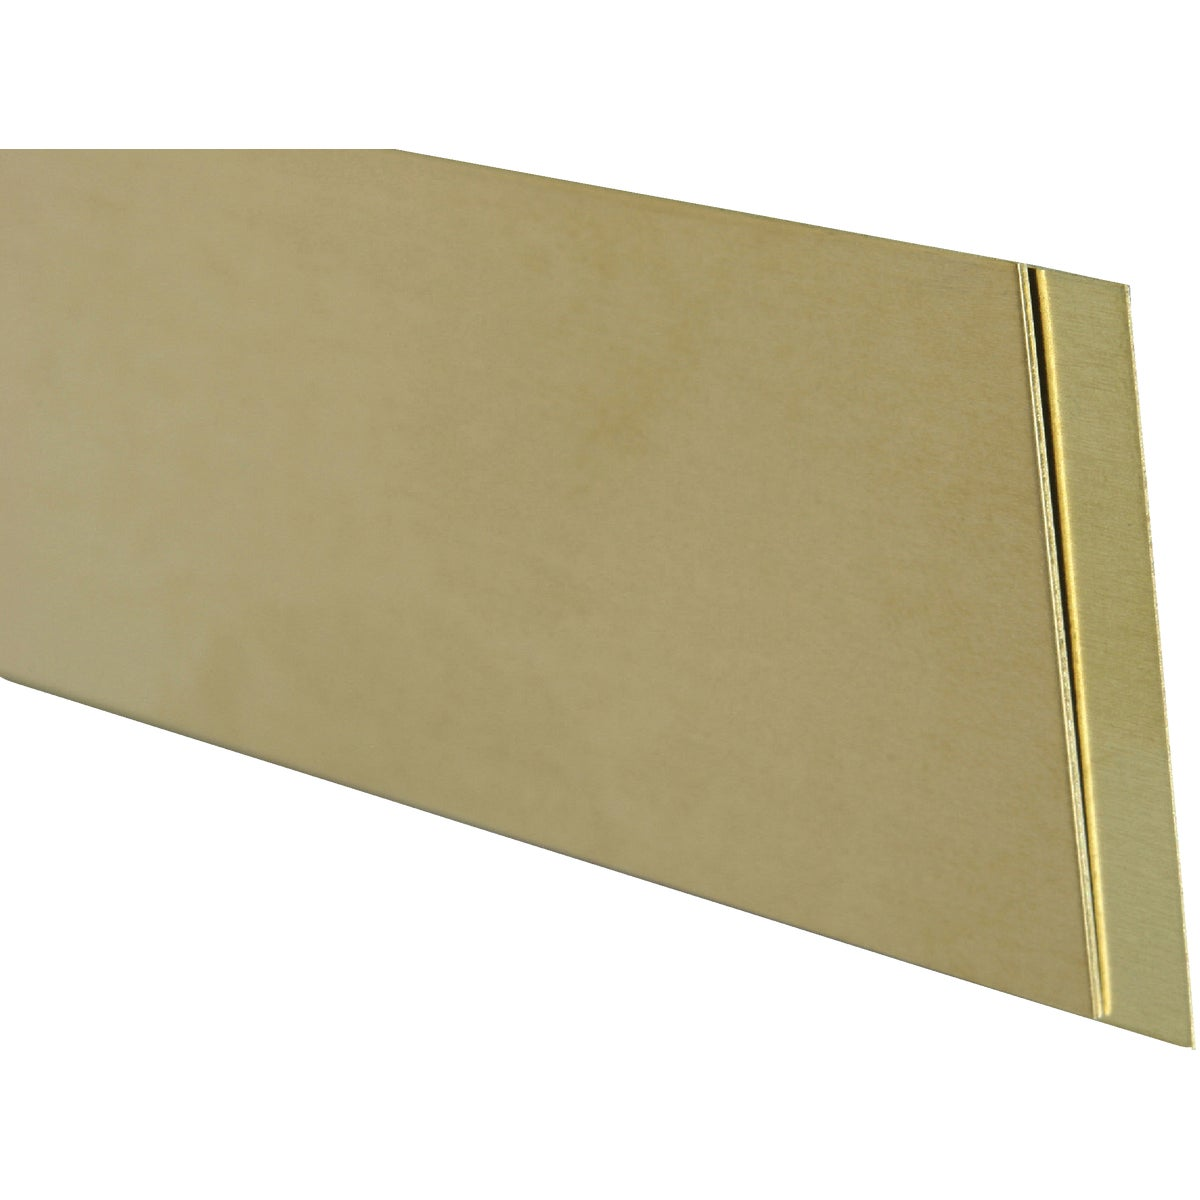 .032X3/4X12 BRASS STRIP - 8243 by K&s Precision Metals